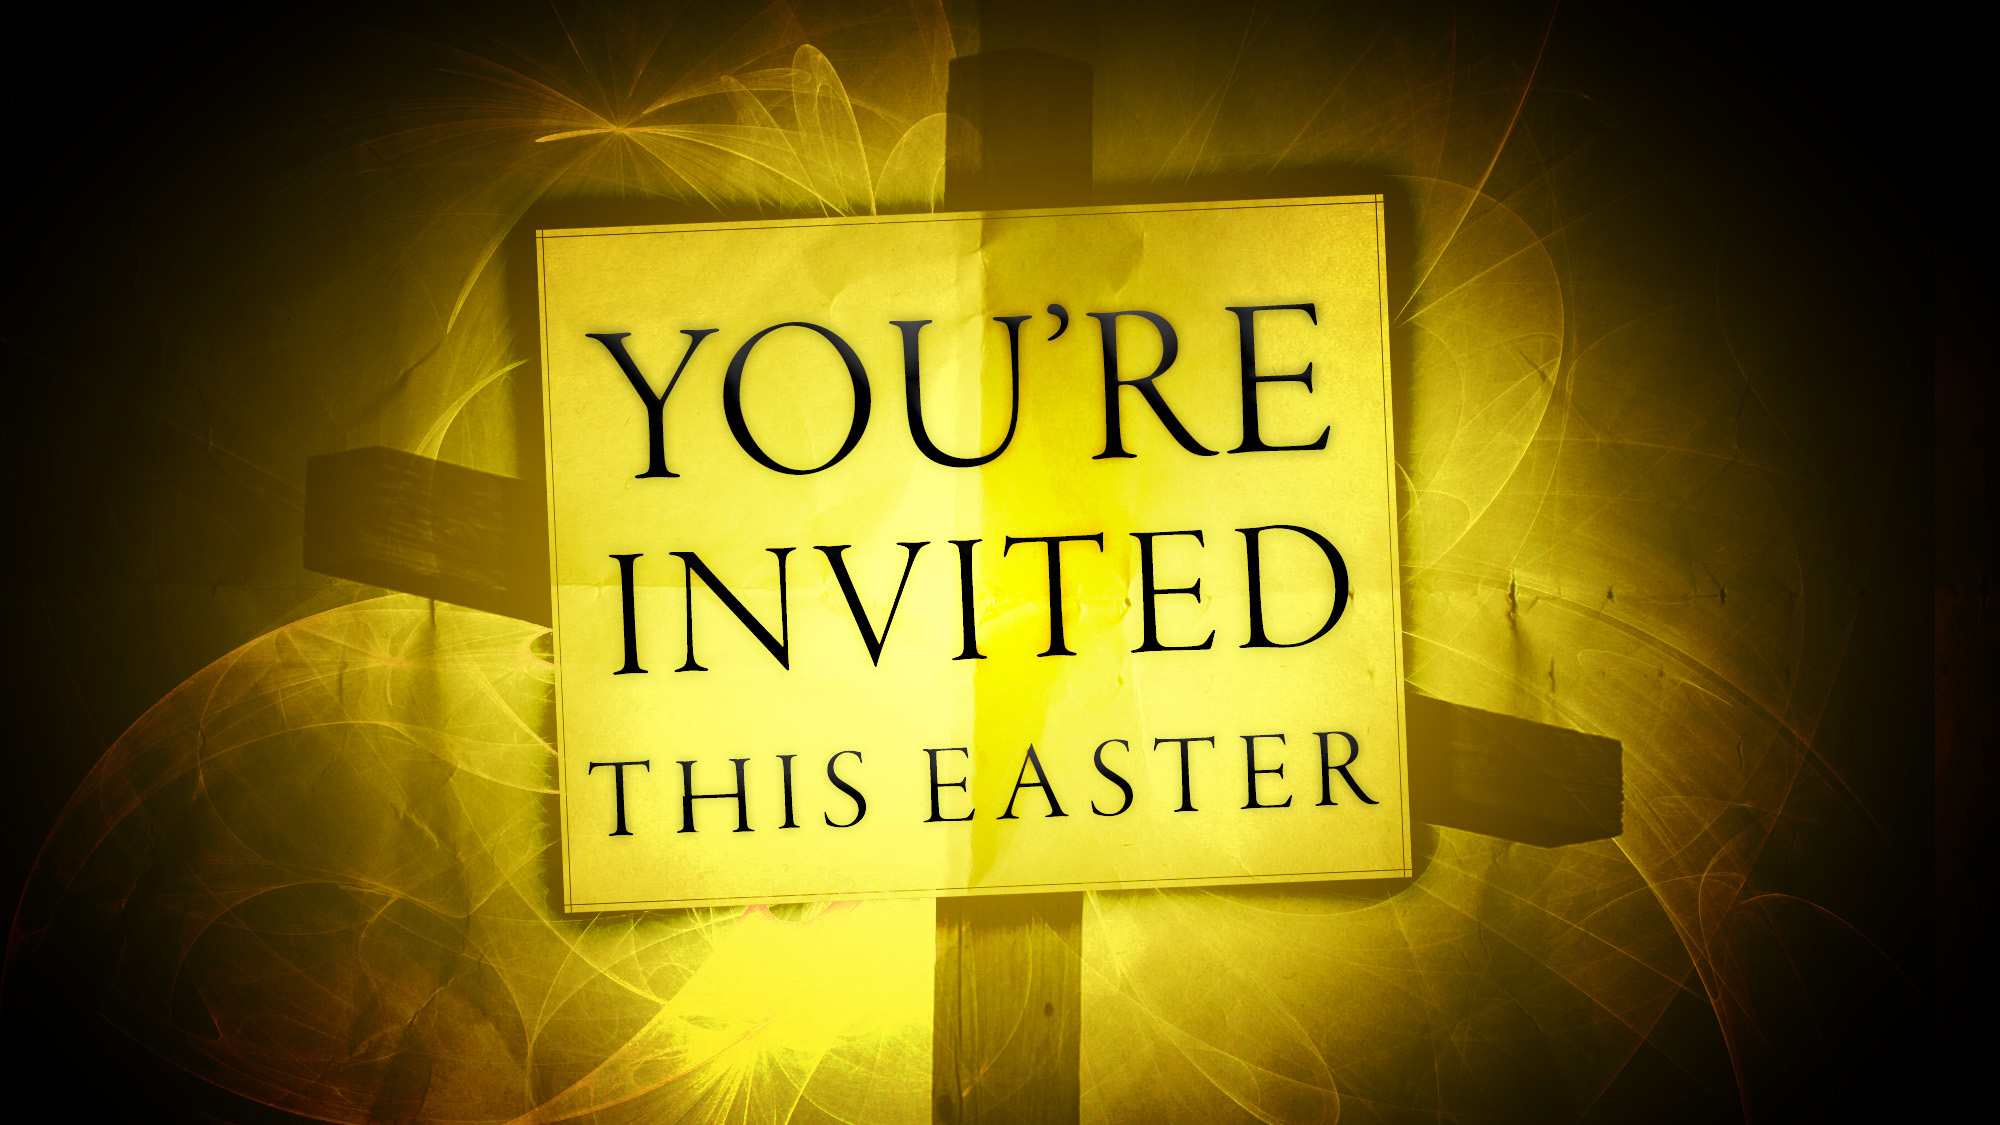 youre invited this easter_wide_t